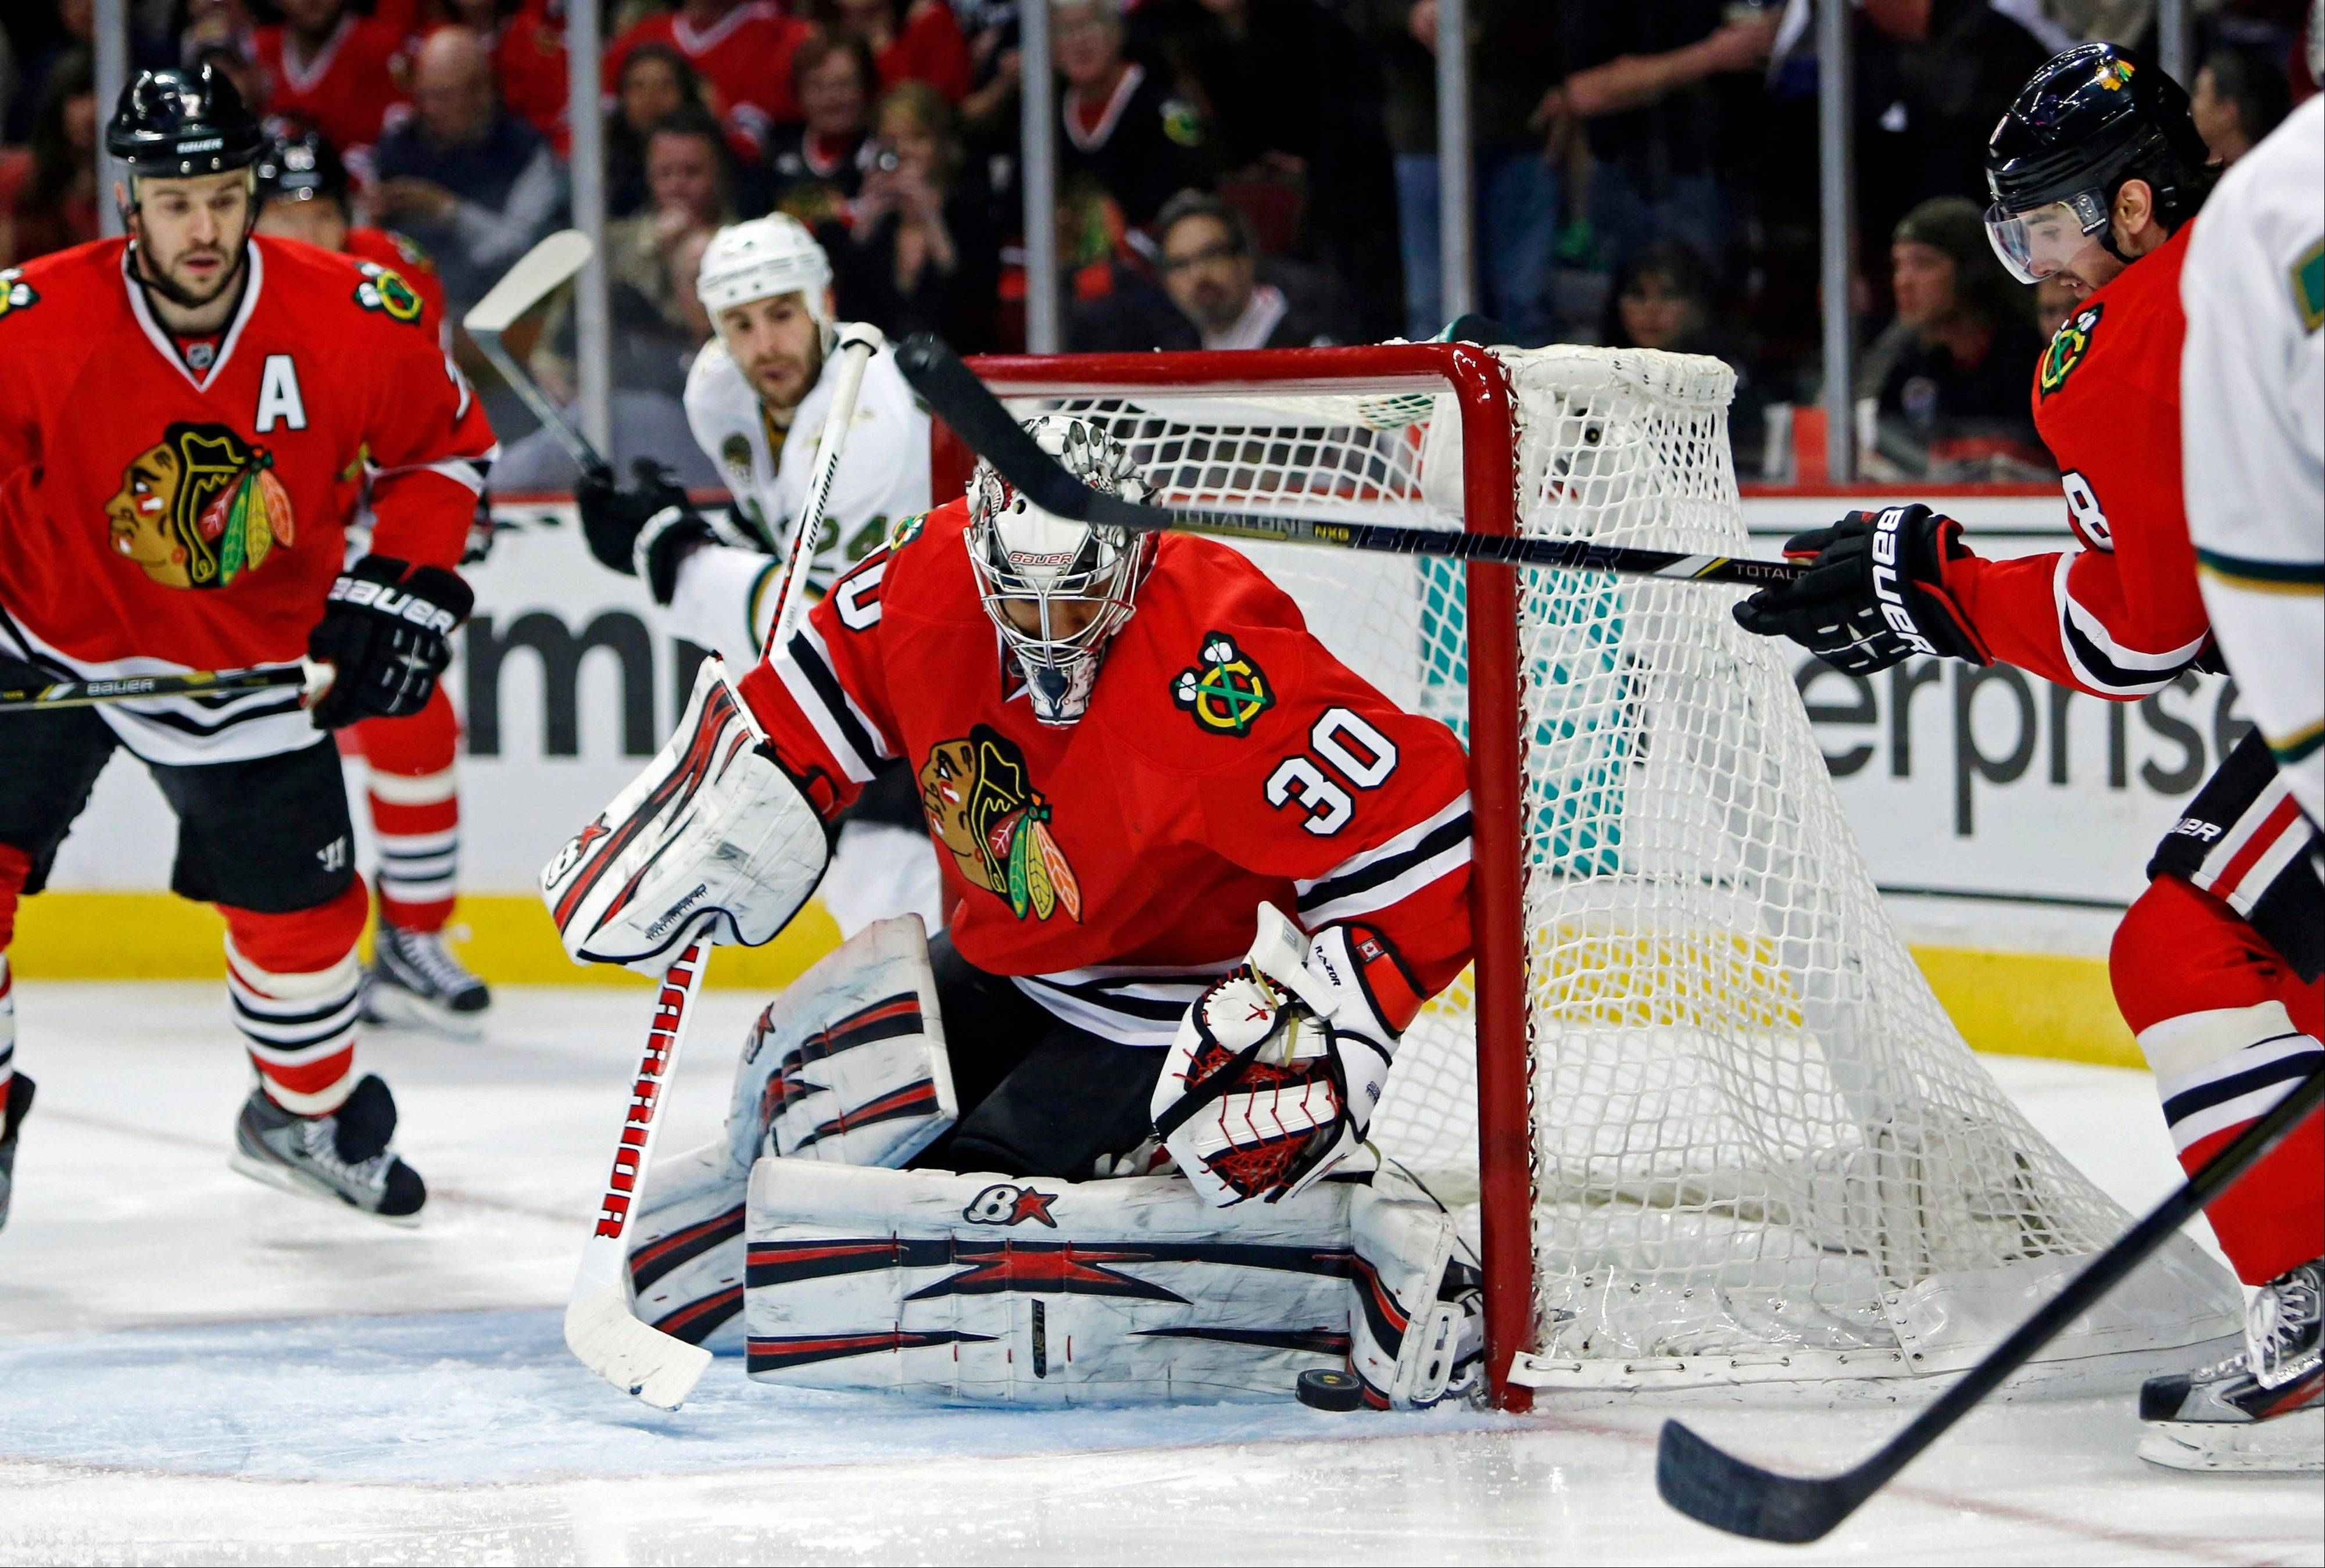 The Blackhawks continued their busy offseason Friday when they re-signed key unrestricted free agents Michal Rozsival and Michal Handzus. However, they lost backup goalie Ray Emery and winger Viktor Stalberg.